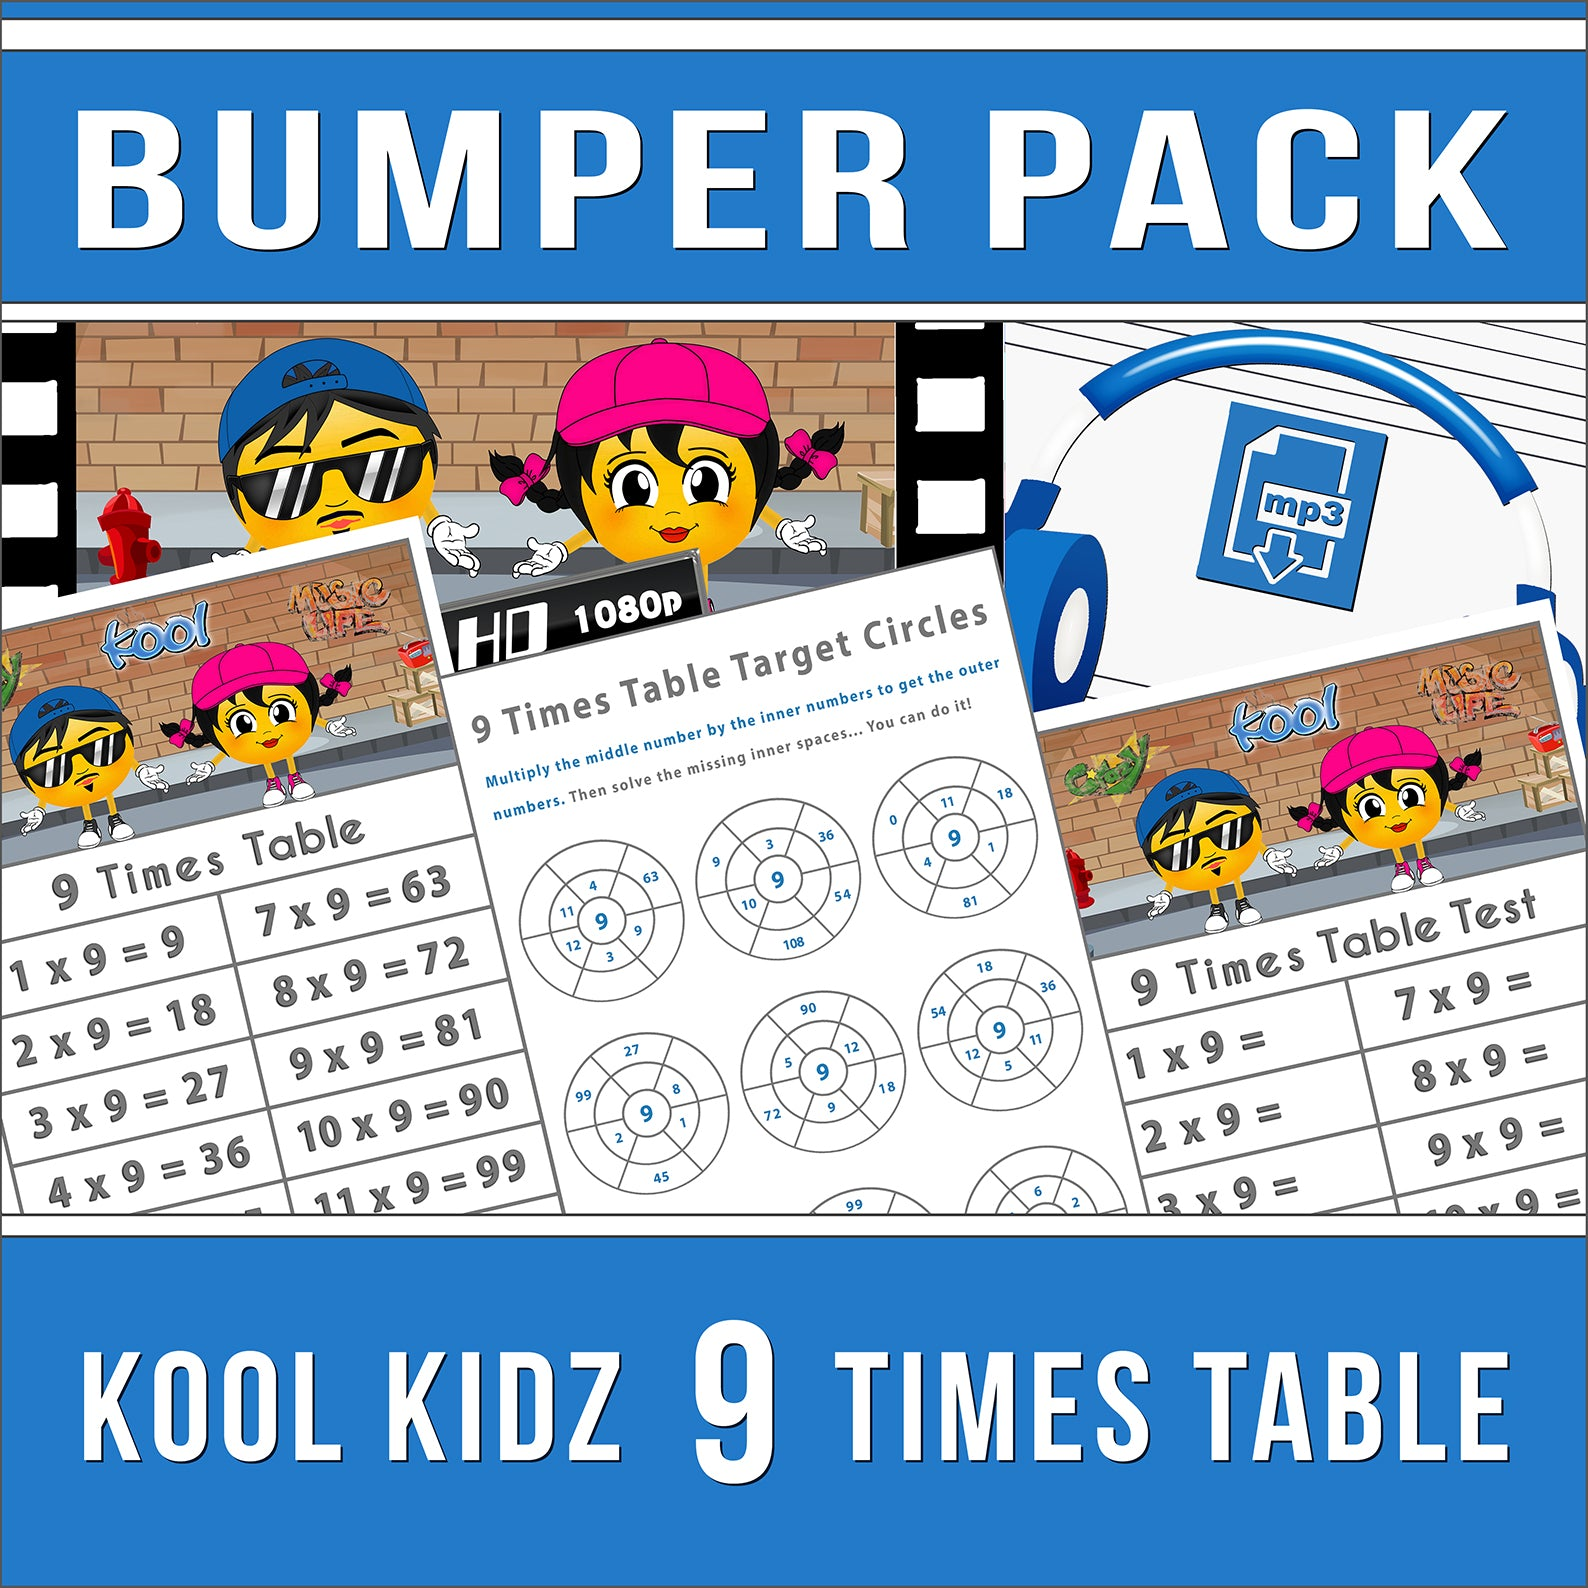 9 Times Table Bumper-Pack